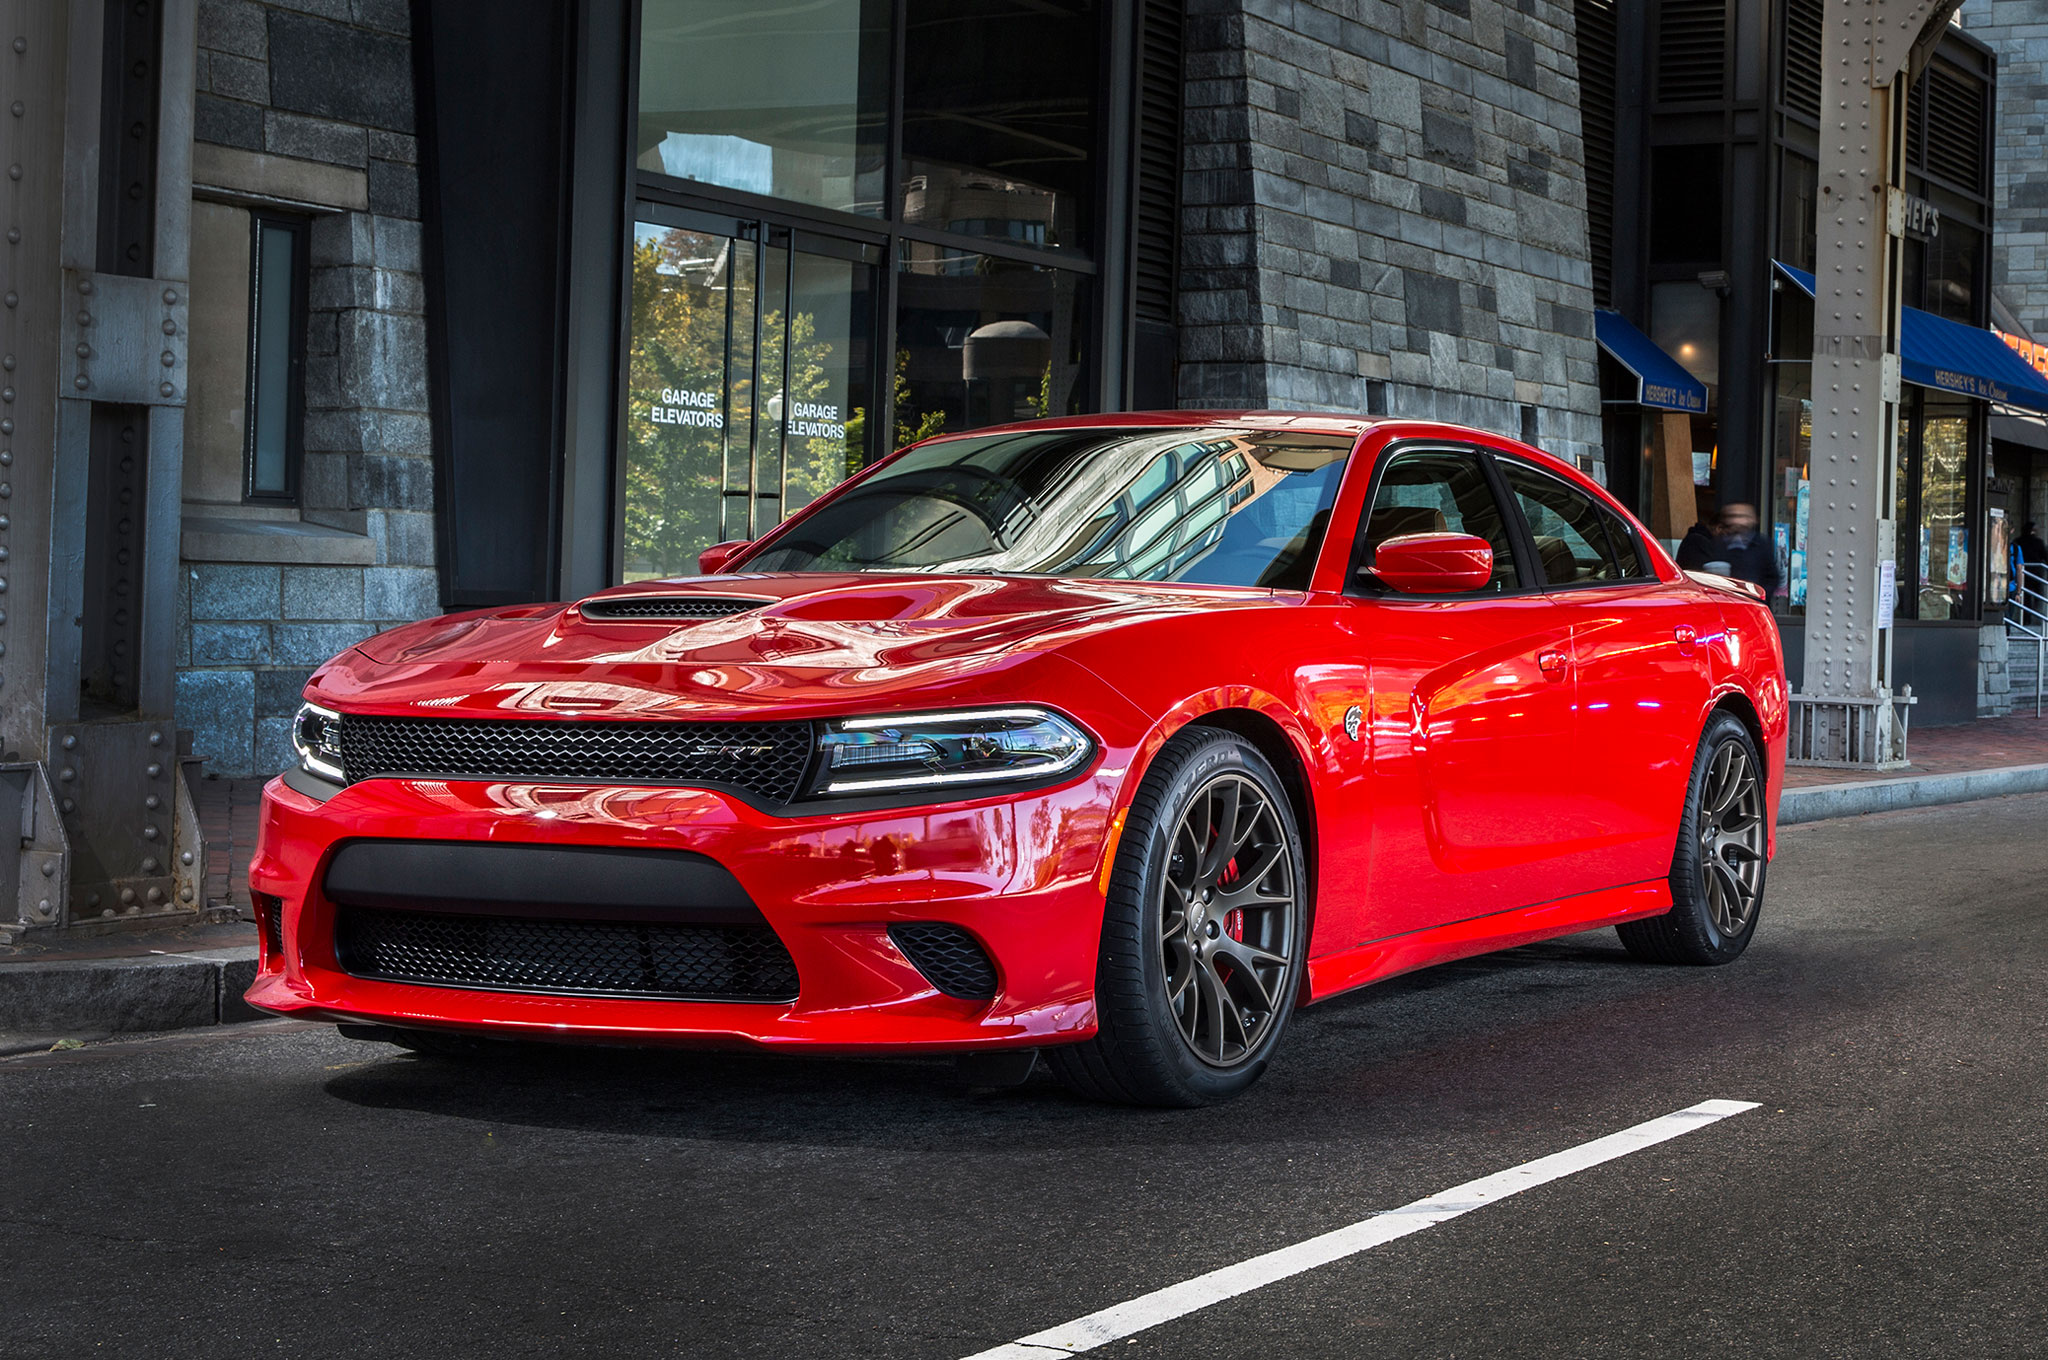 Dodge Charger Srt Hellcat >> 2015 Dodge Charger Srt Hellcat Review